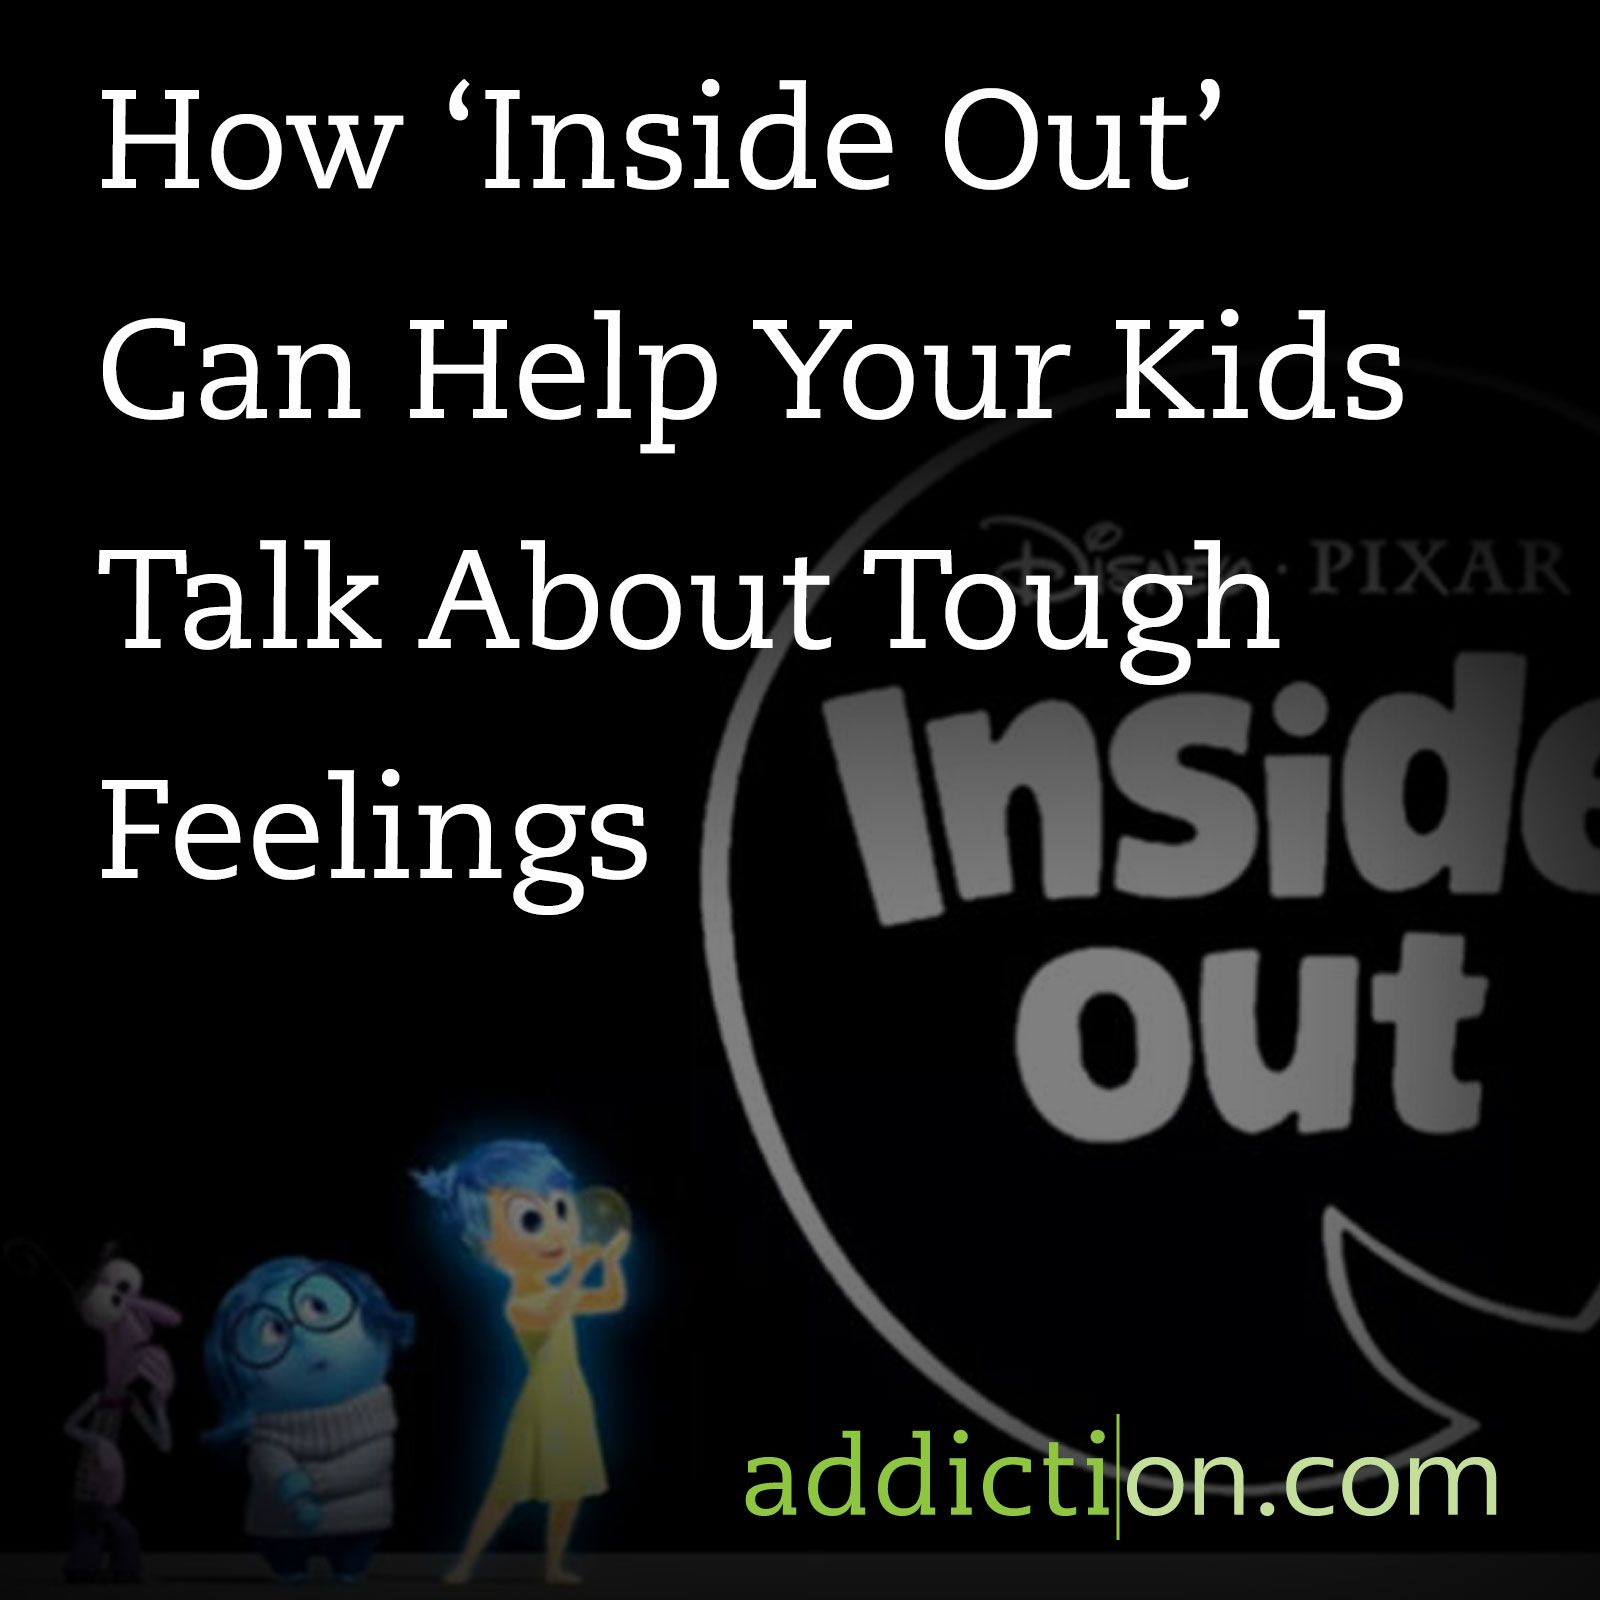 How Inside Out Can Help Your Kids Talk About Tough